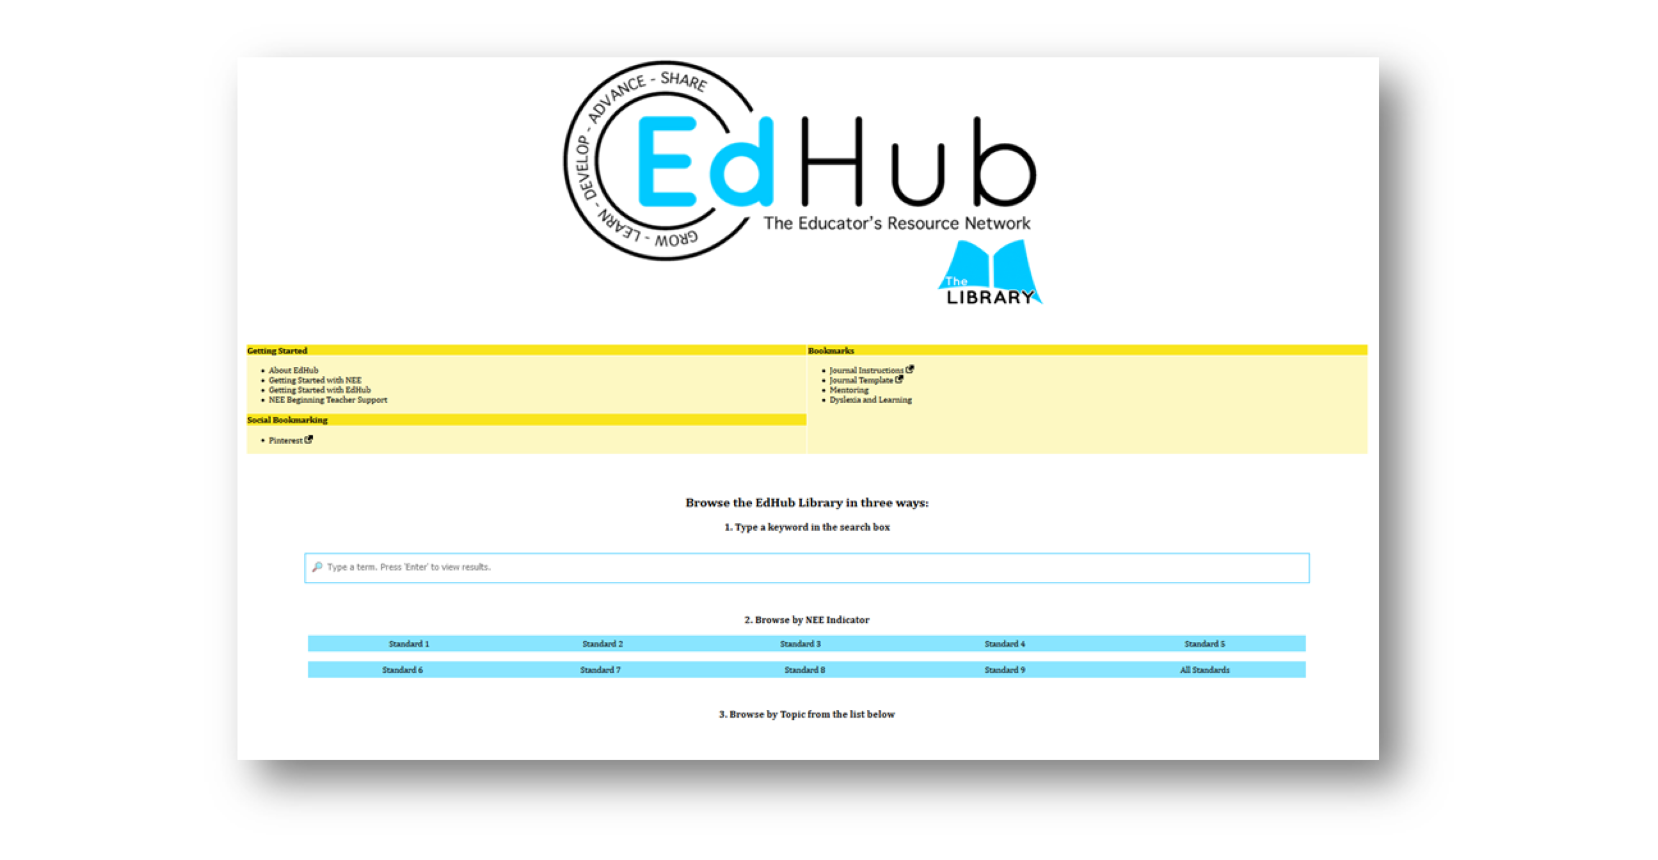 Educational Professional Development - EdHub